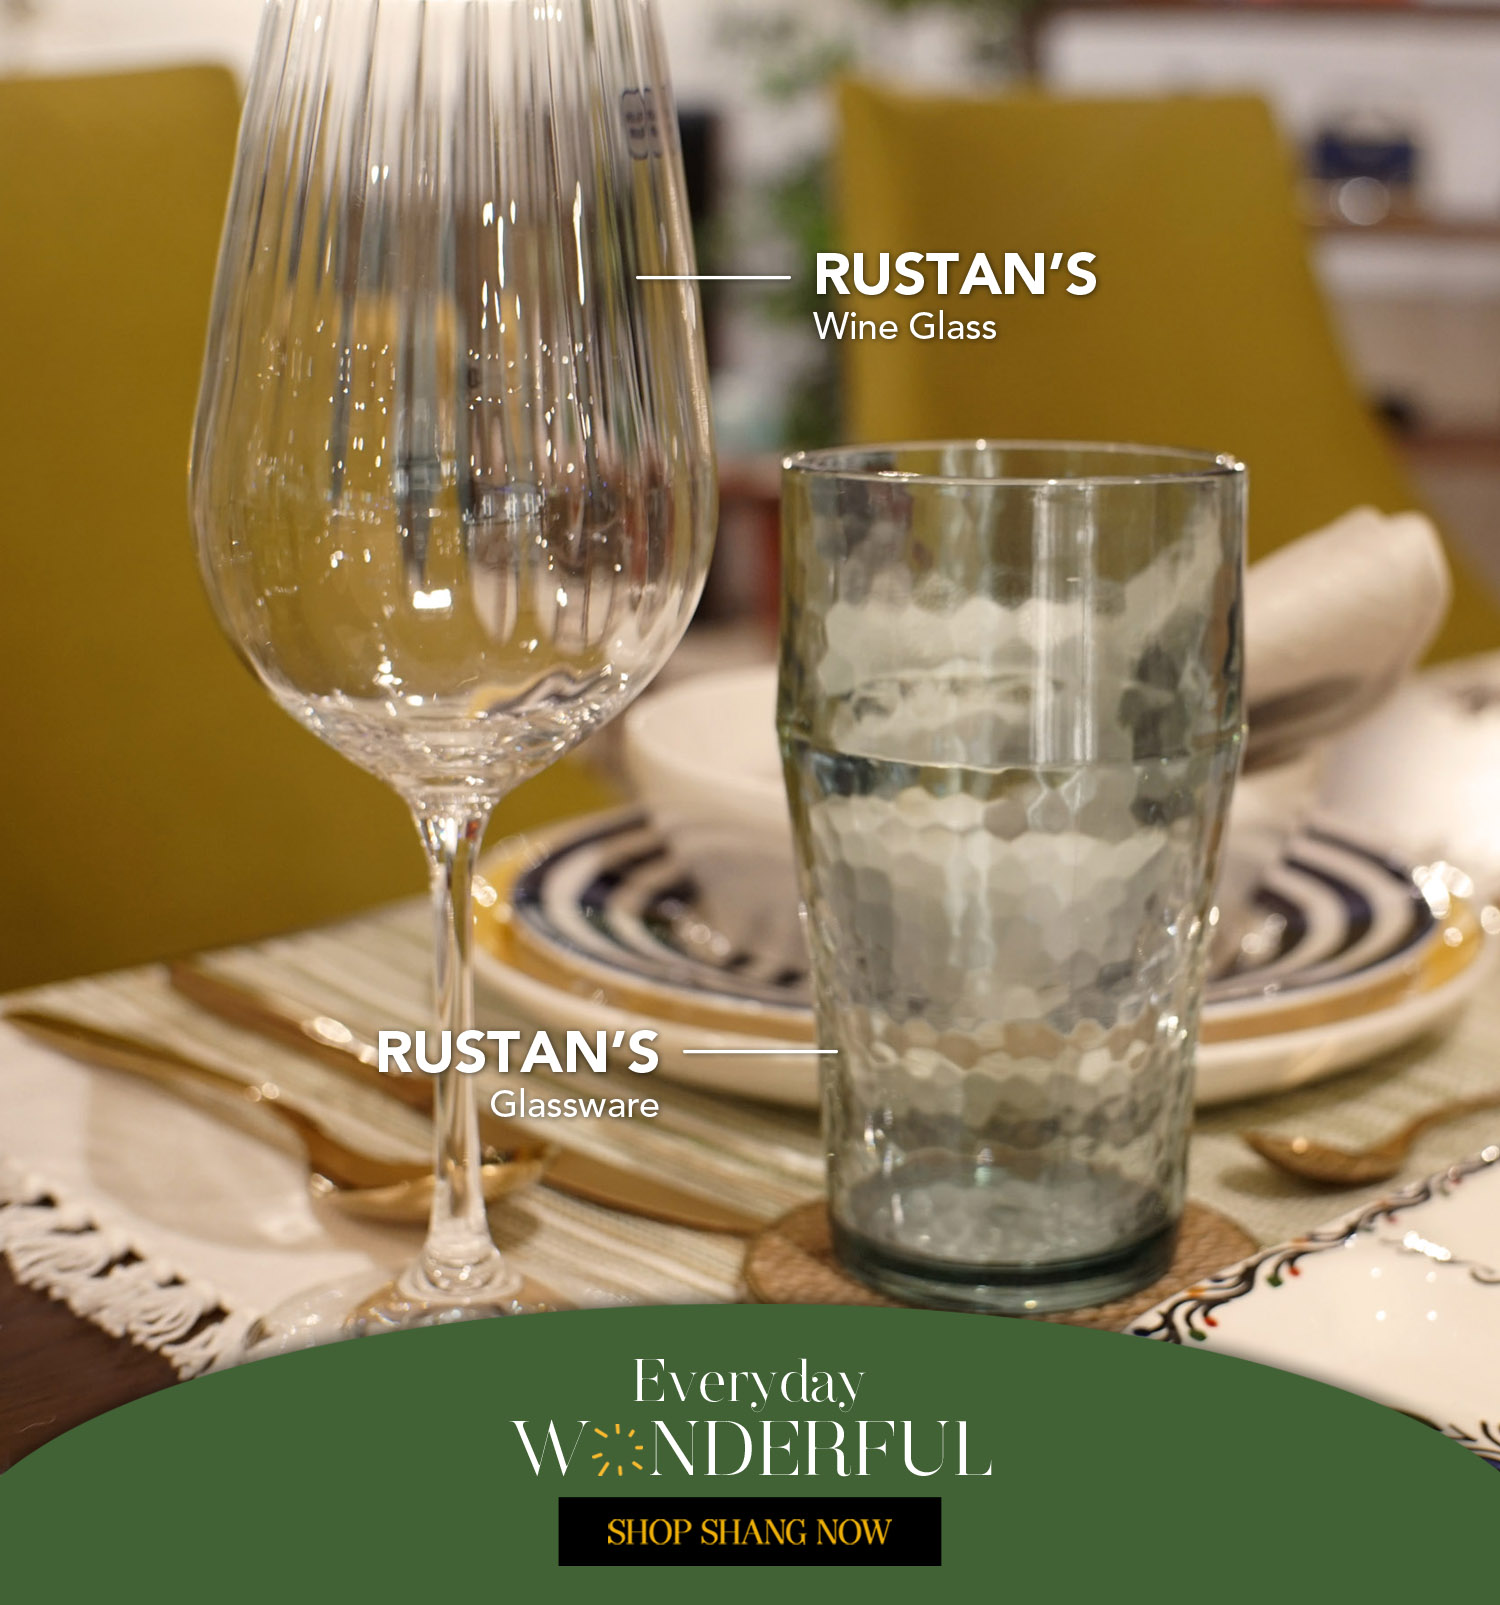 Drinking Glassware and Wine Glass from Rustan's